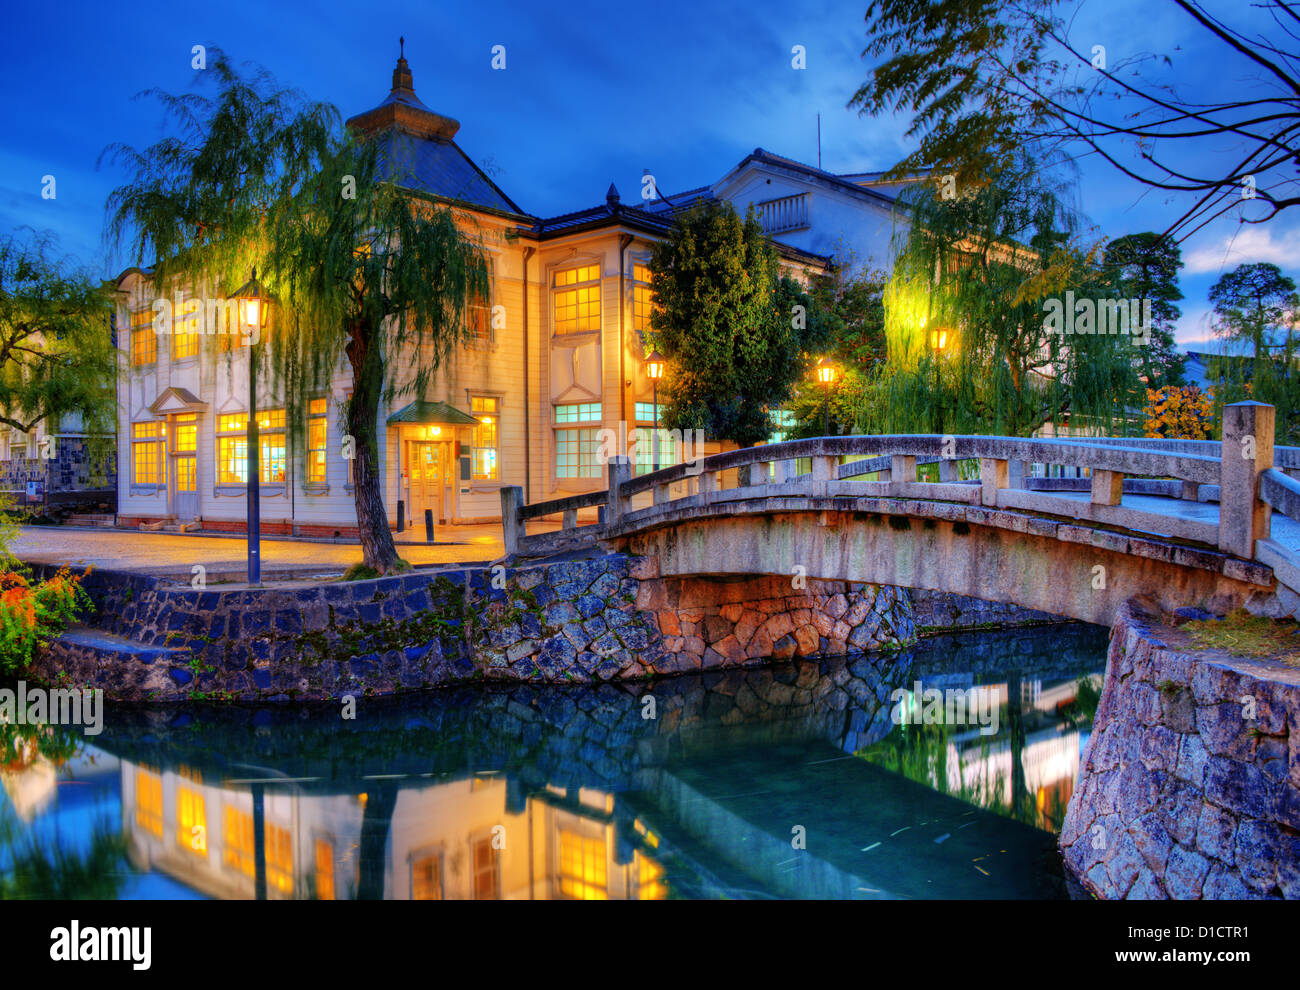 Famed Bridge and Canal of Kurashiki, Japan. - Stock Image